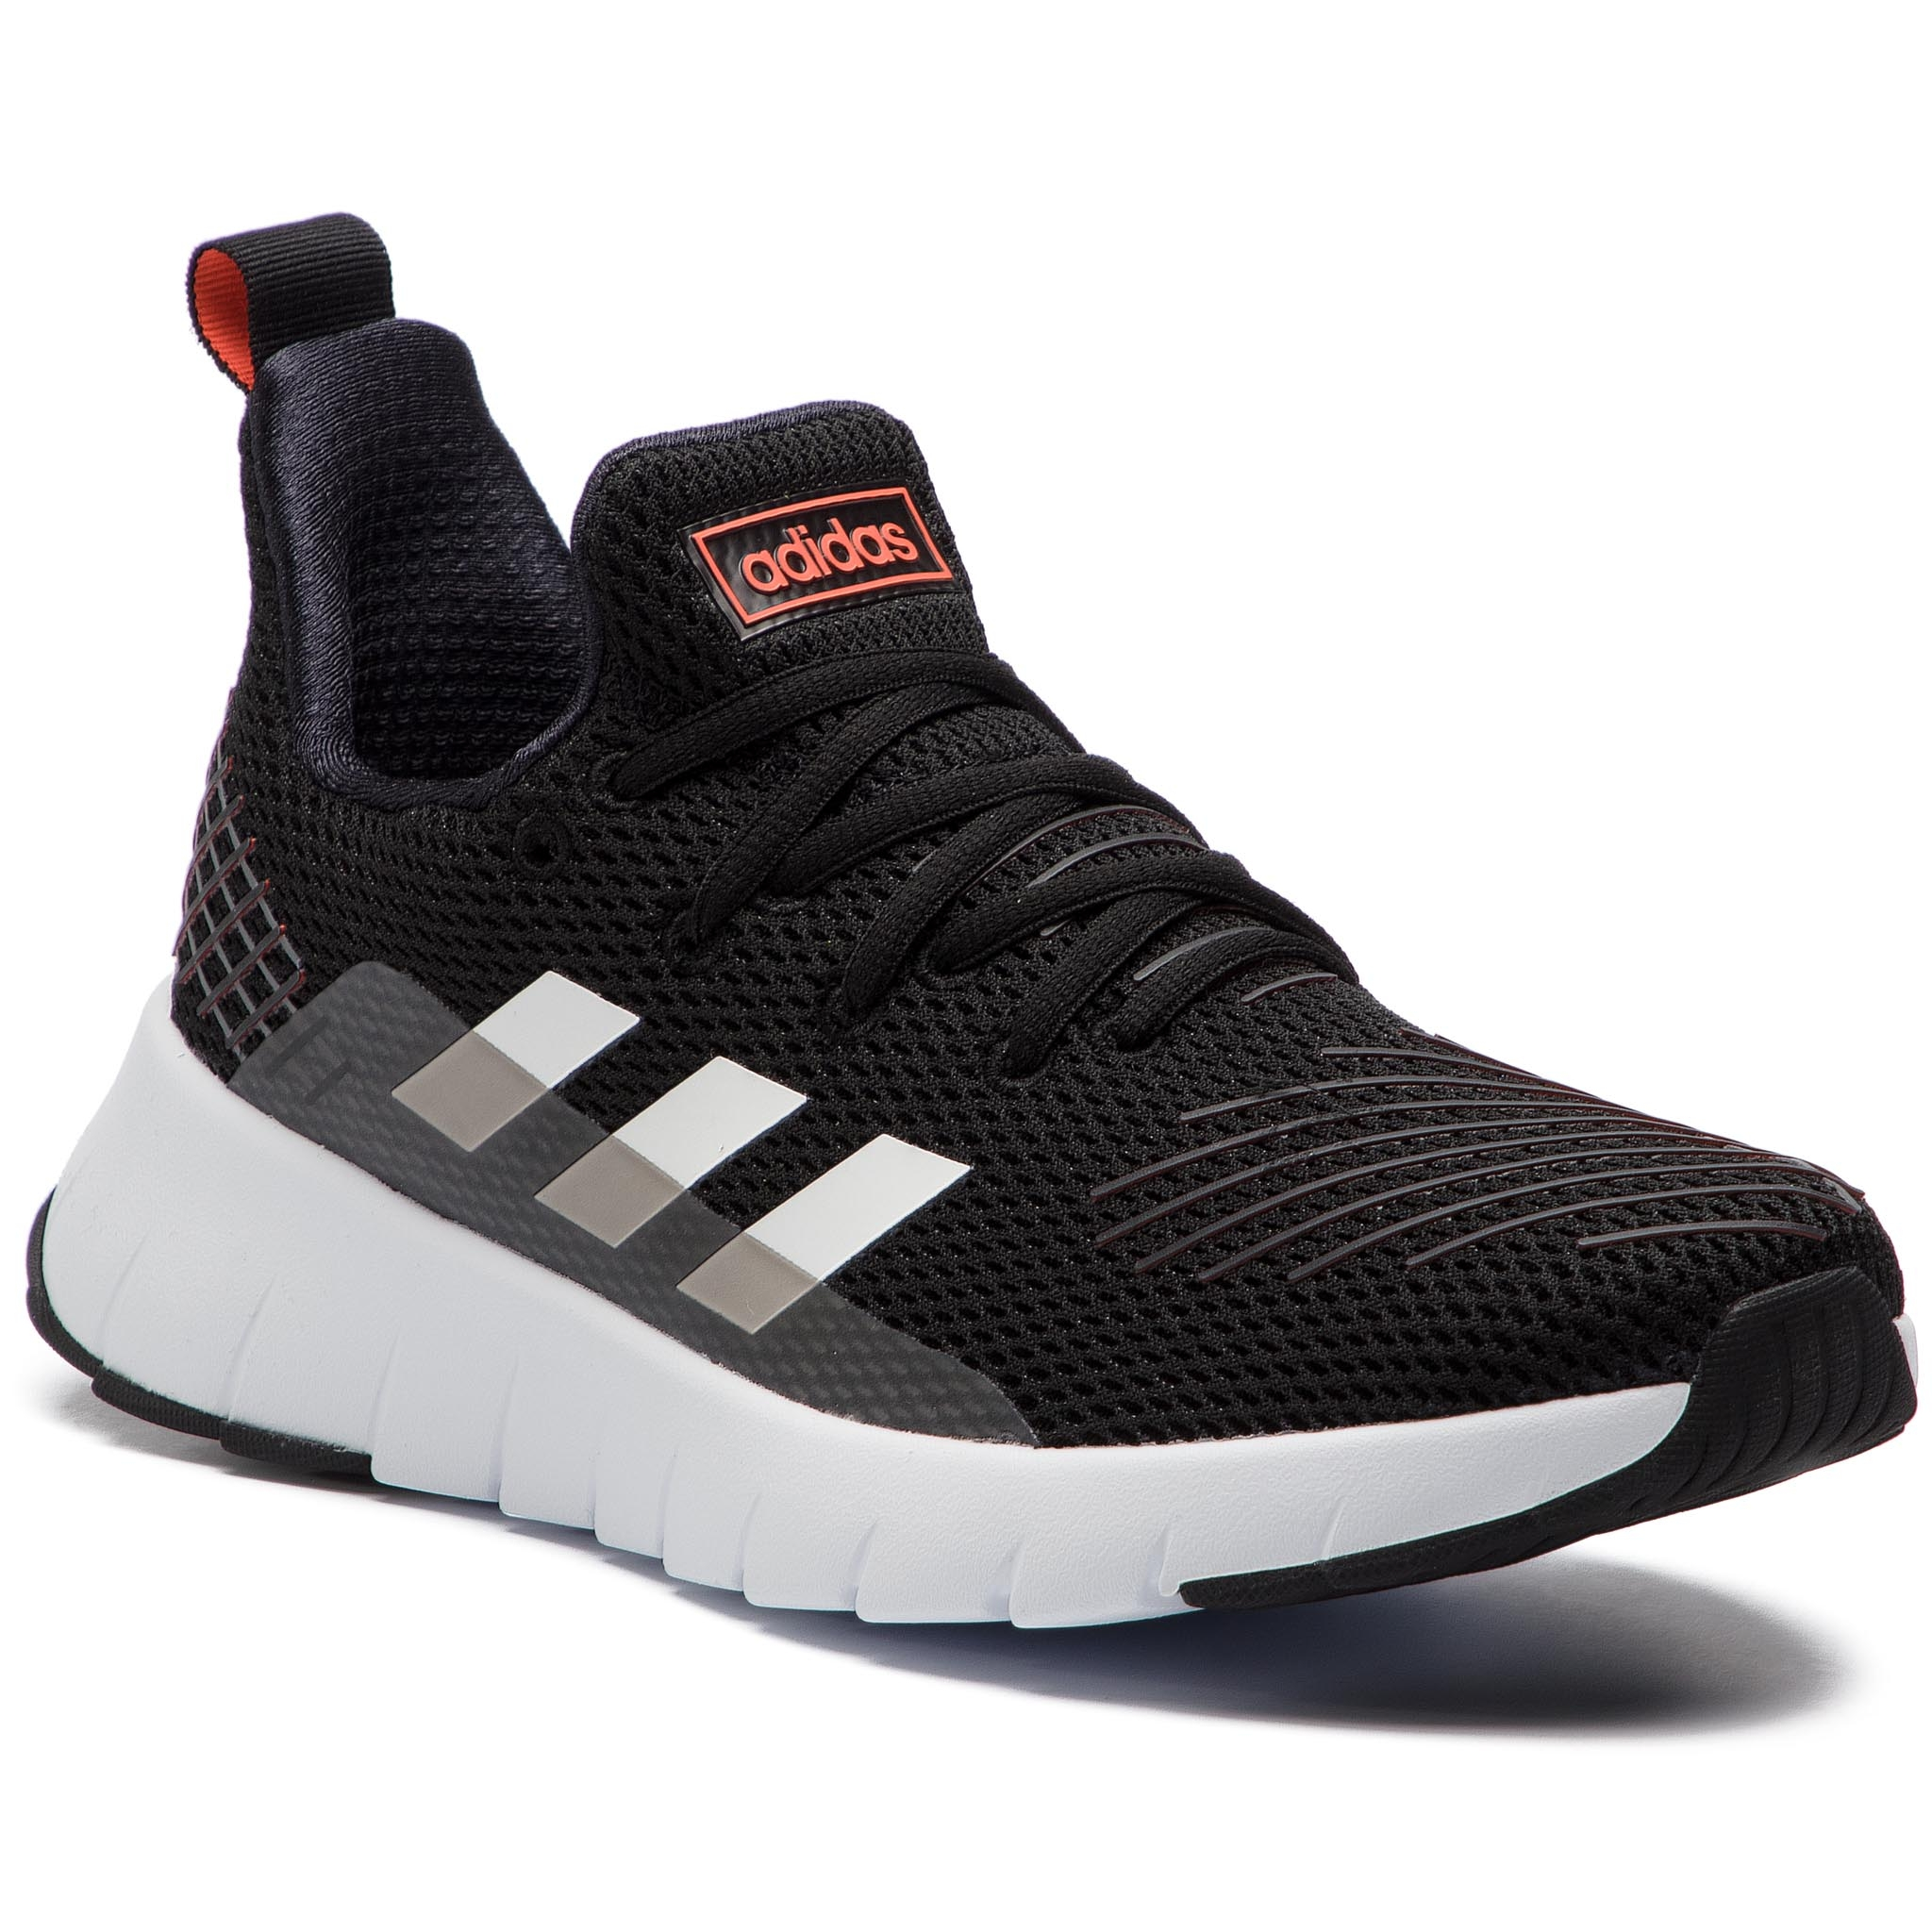 abf30539 Women's Sneakers Adidas - price comparison | Pricer.lt